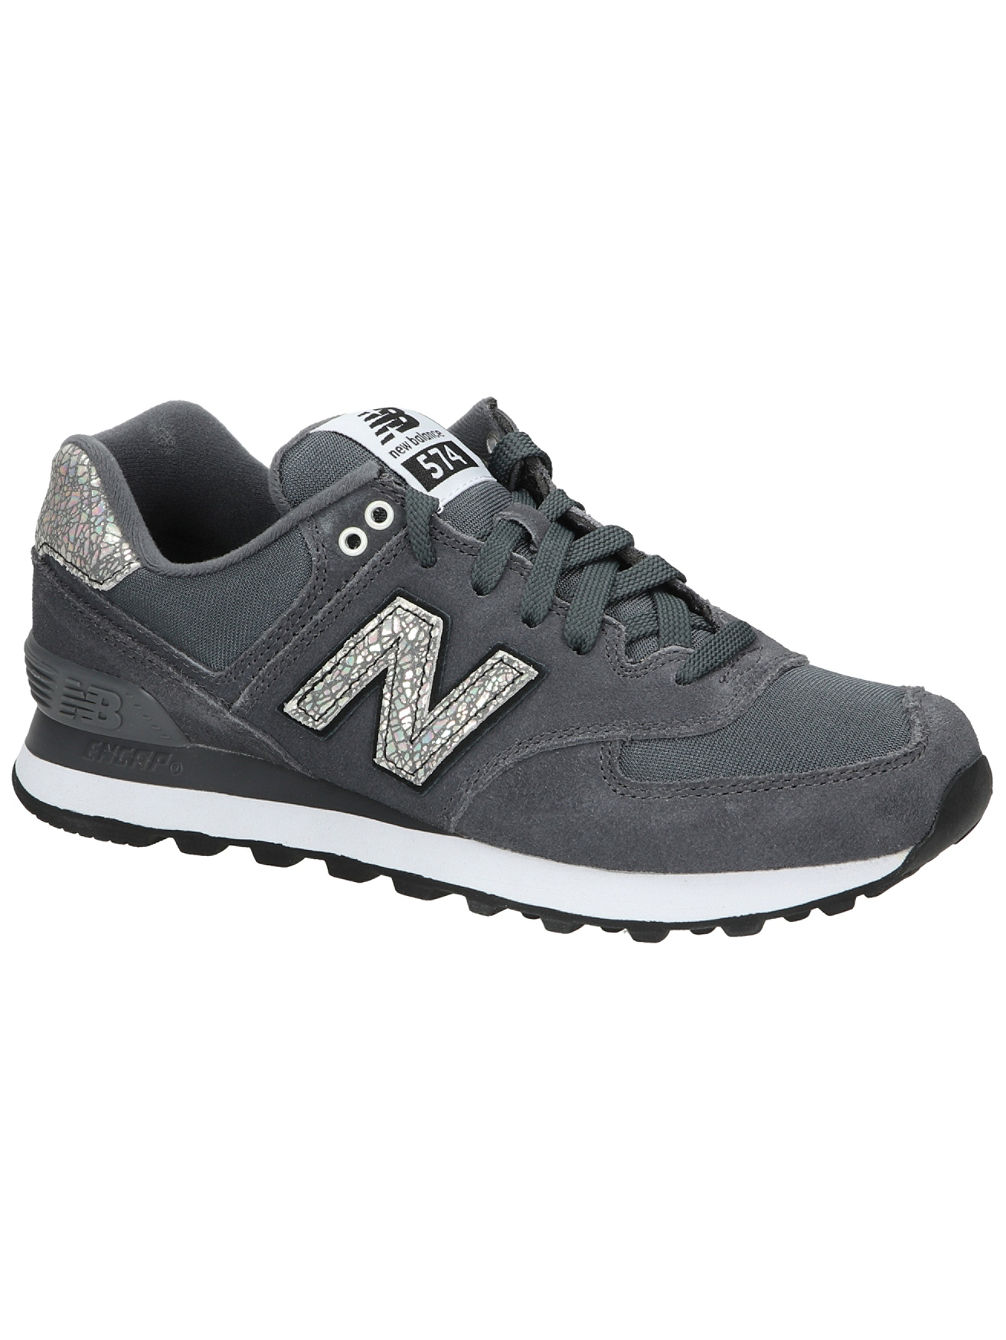 405c47660c4f Buy New Balance 574 Classic Running Sneakers Women online at Blue Tomato